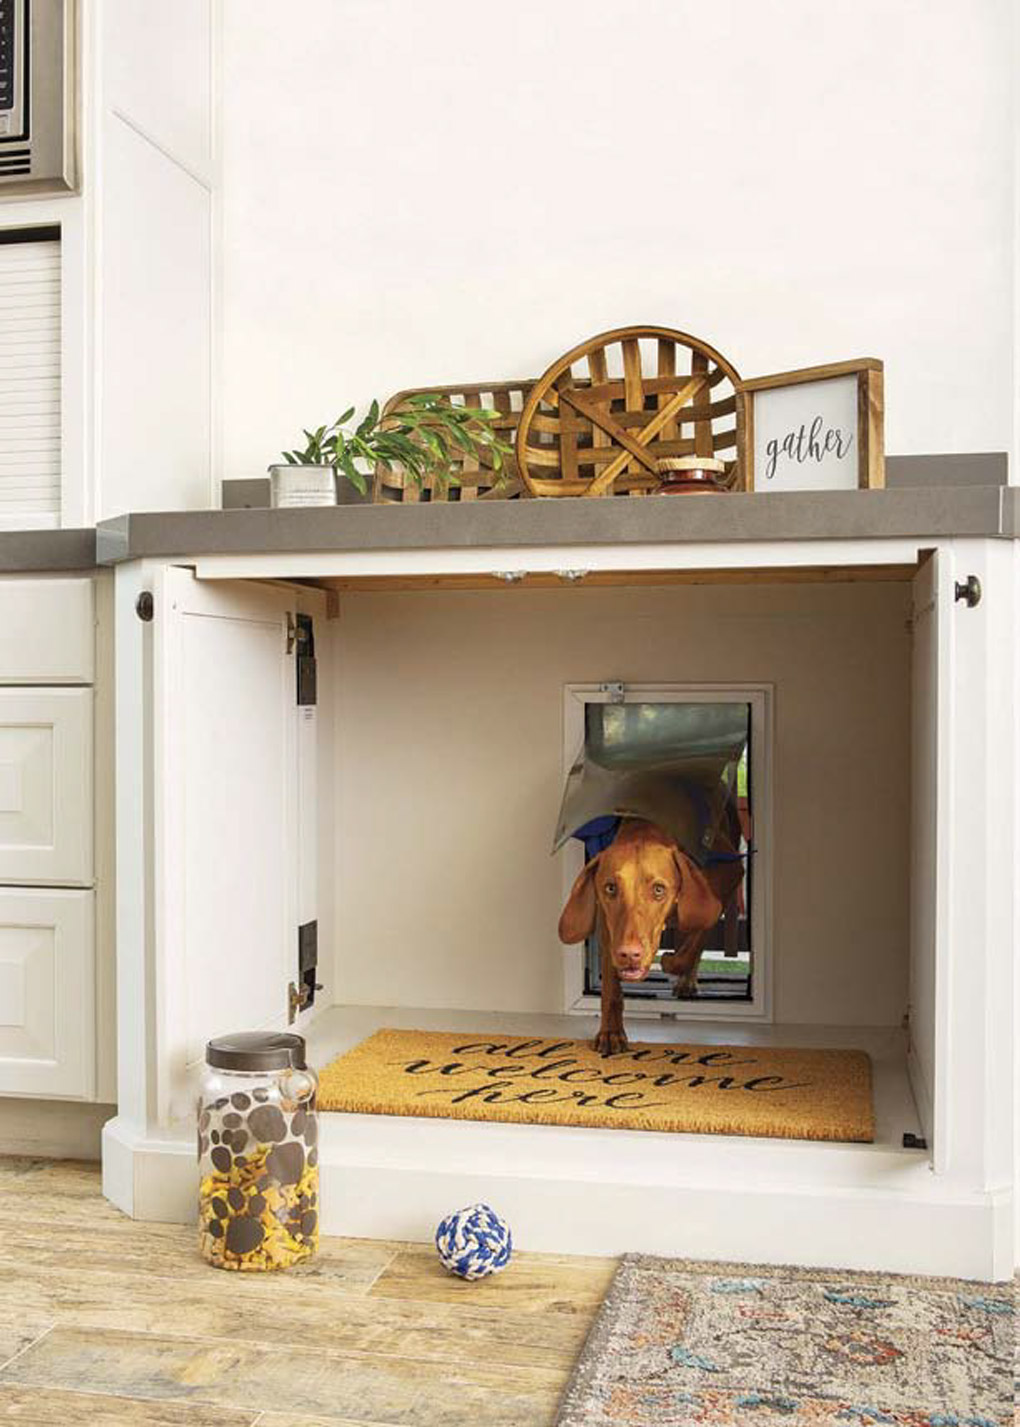 kitchen remodel with custom cabinets that open to a doggie door with a chocolate brown dog coming inside.